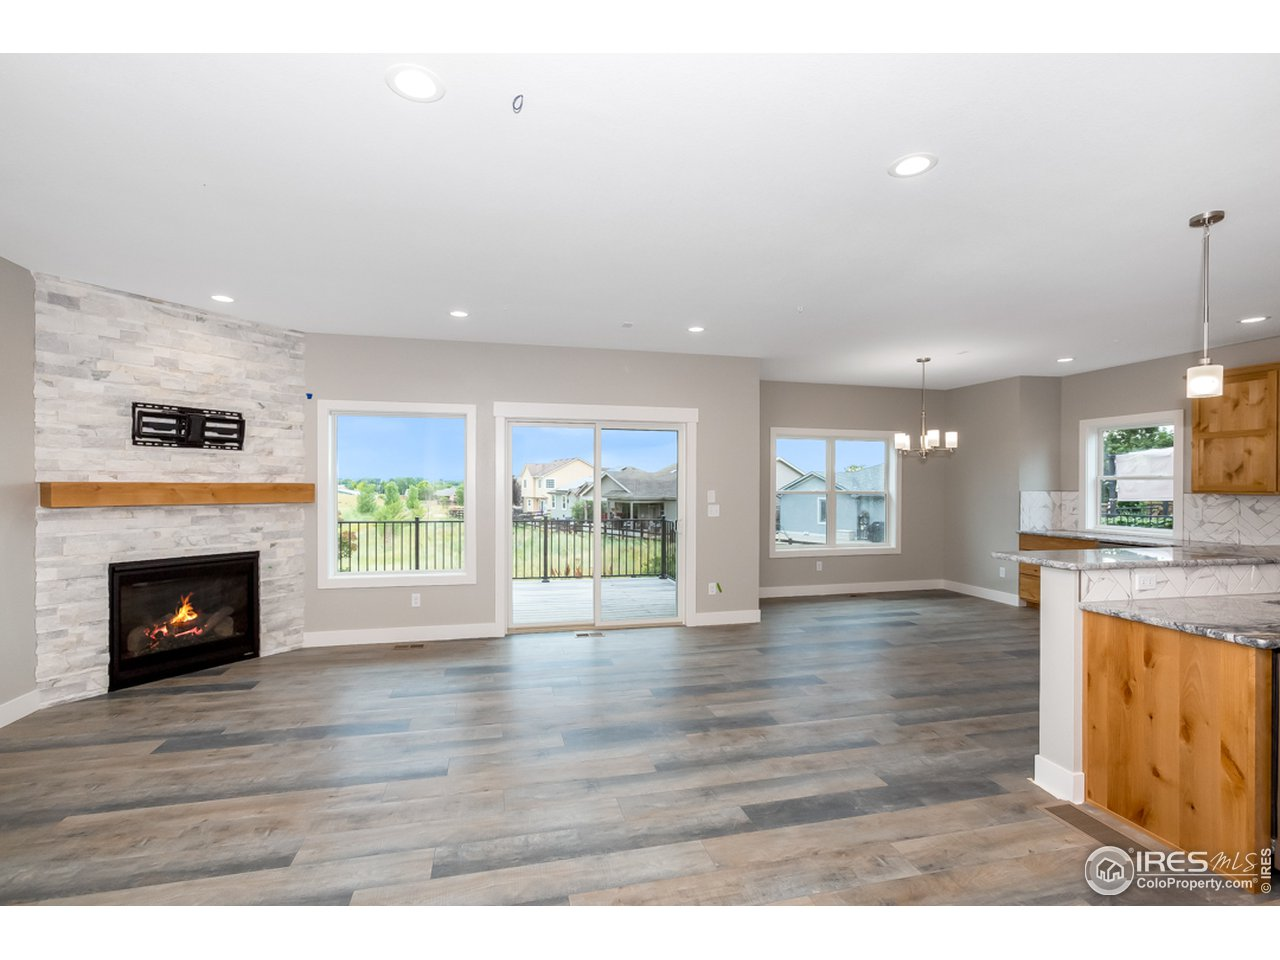 This is an example of Benchmark Homes' finishes from another model